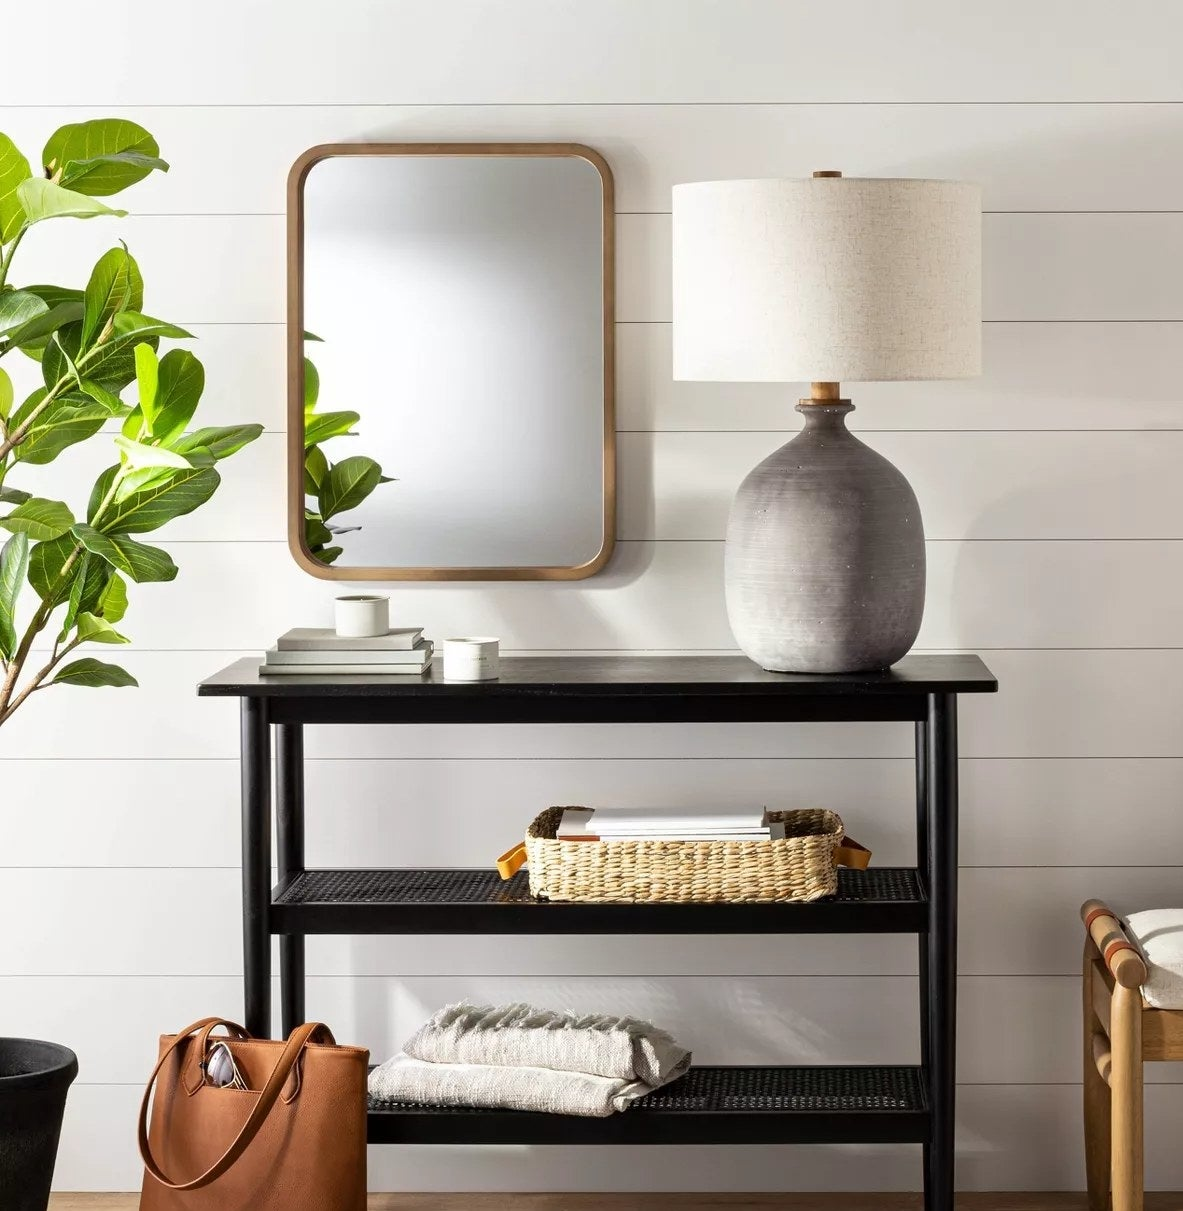 The rectangular mirror in an entryway above a table